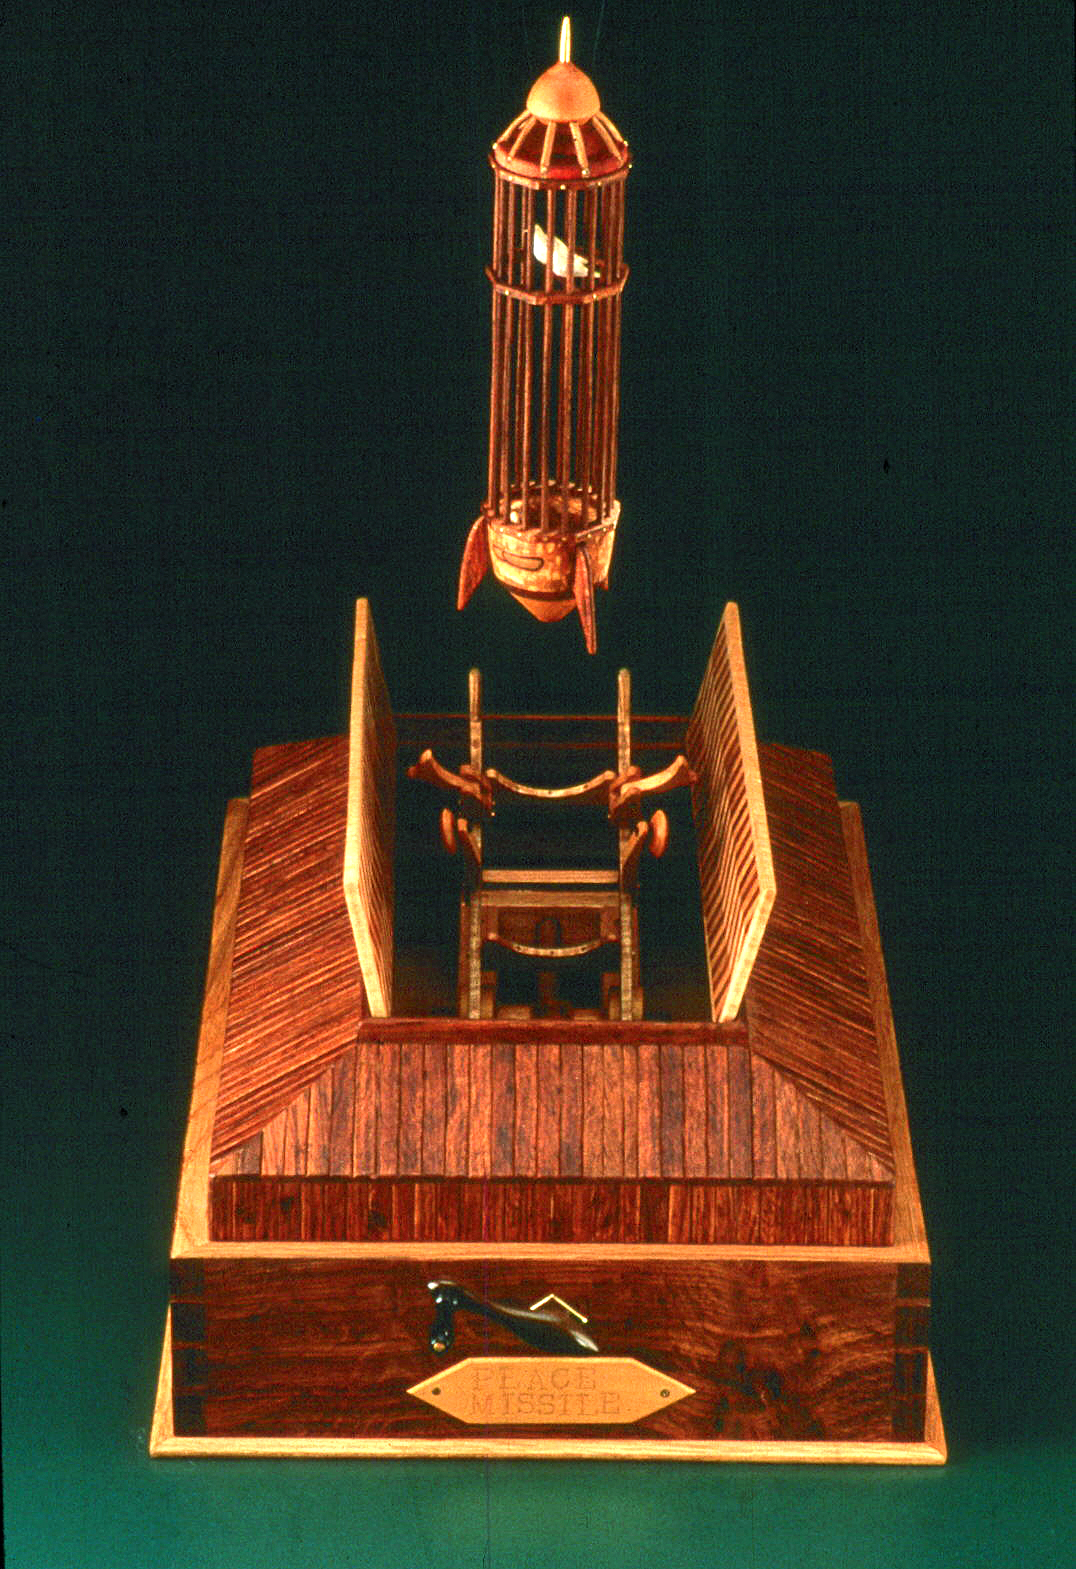 """Roy Superior, """"Peace Missile"""" 1985, wood, brass, music box, 20 x 7 12"""". (Collection of the Artist)"""